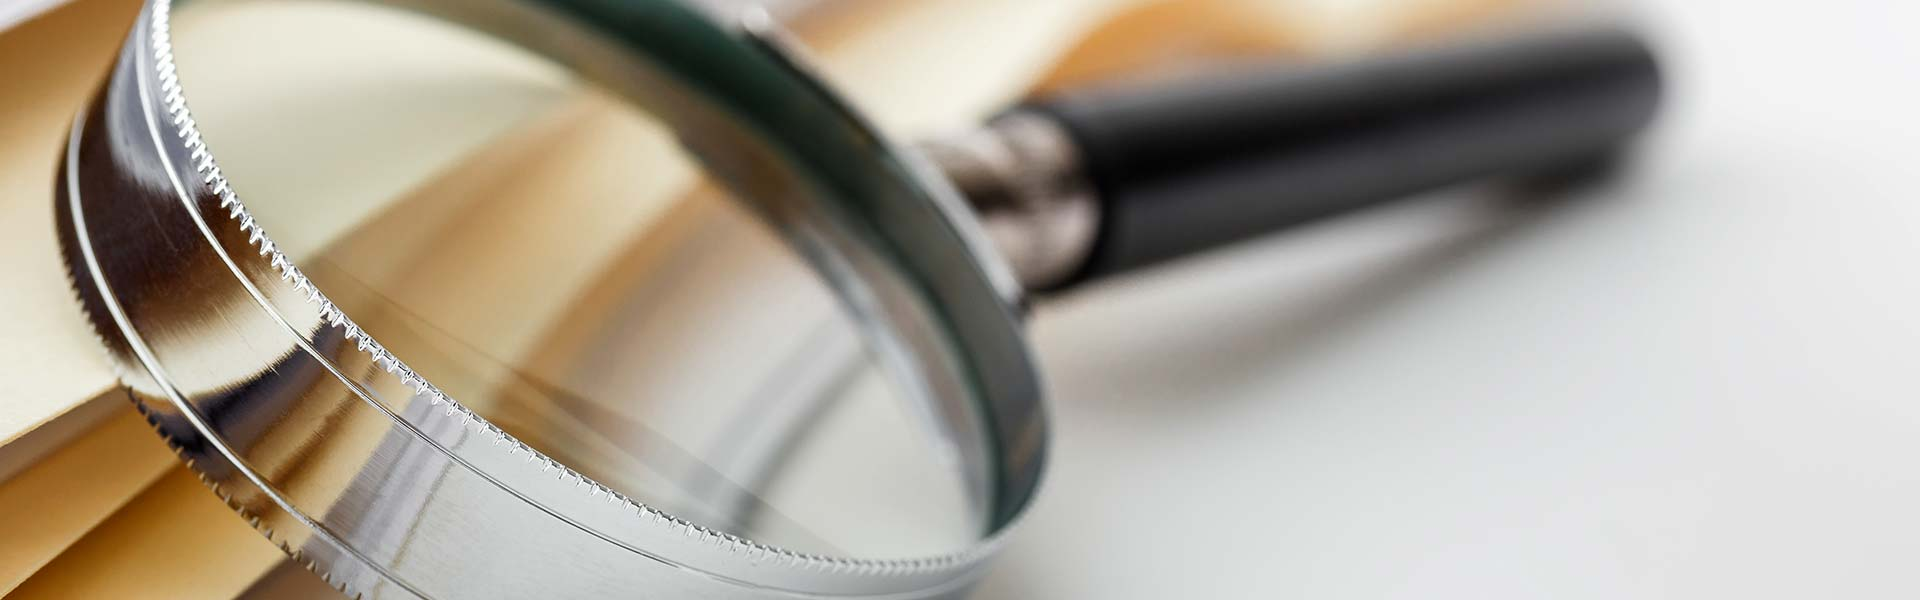 A magnifying glass in front of a pile of papers and folders